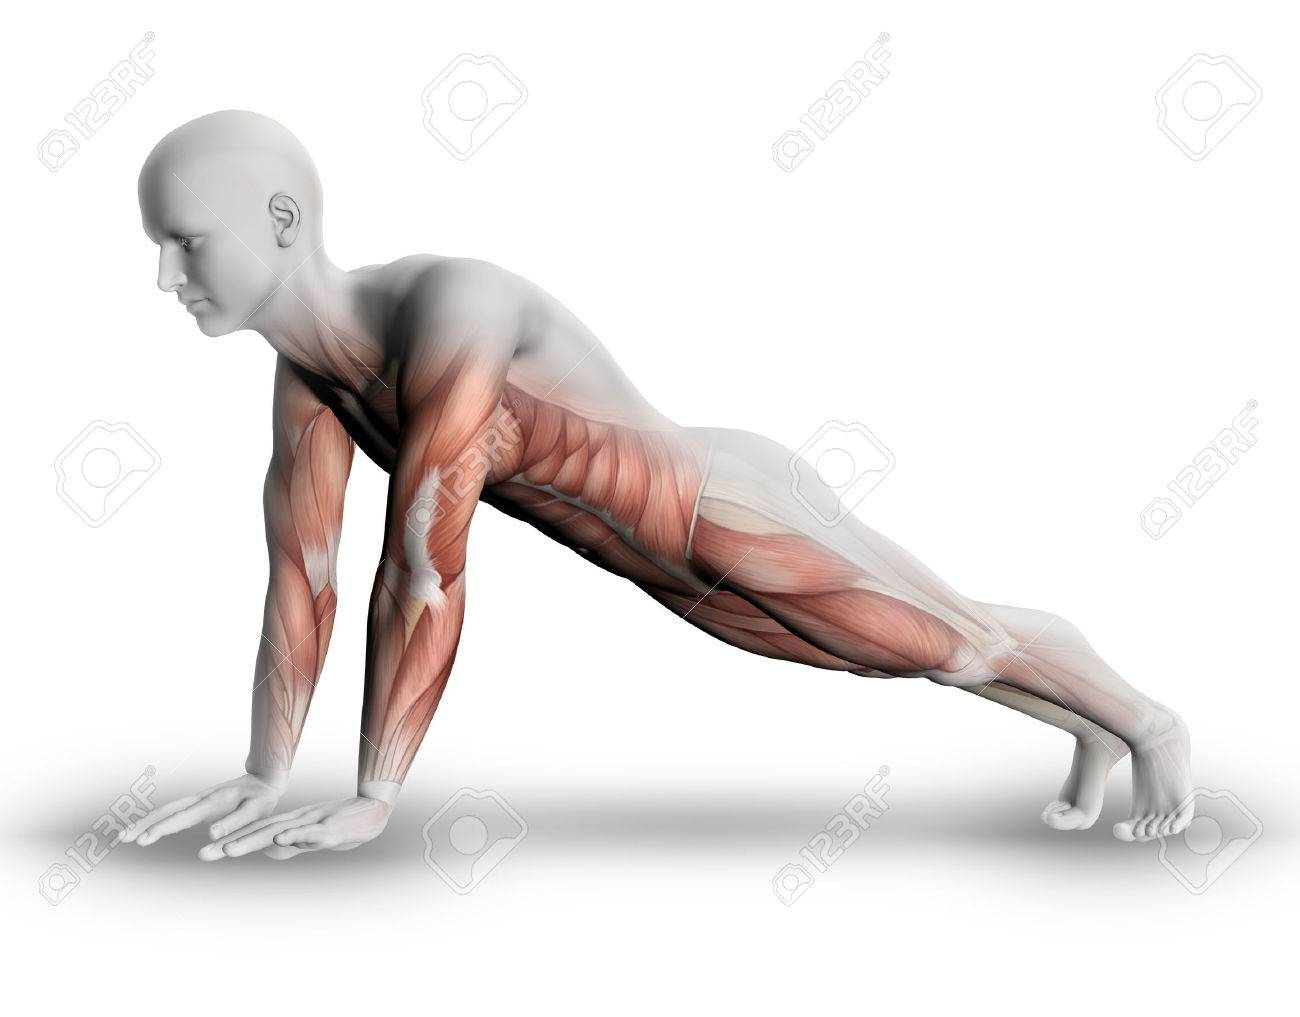 3d Male Medical Figure With Partial Muscle Map In Yoga Pose Stock